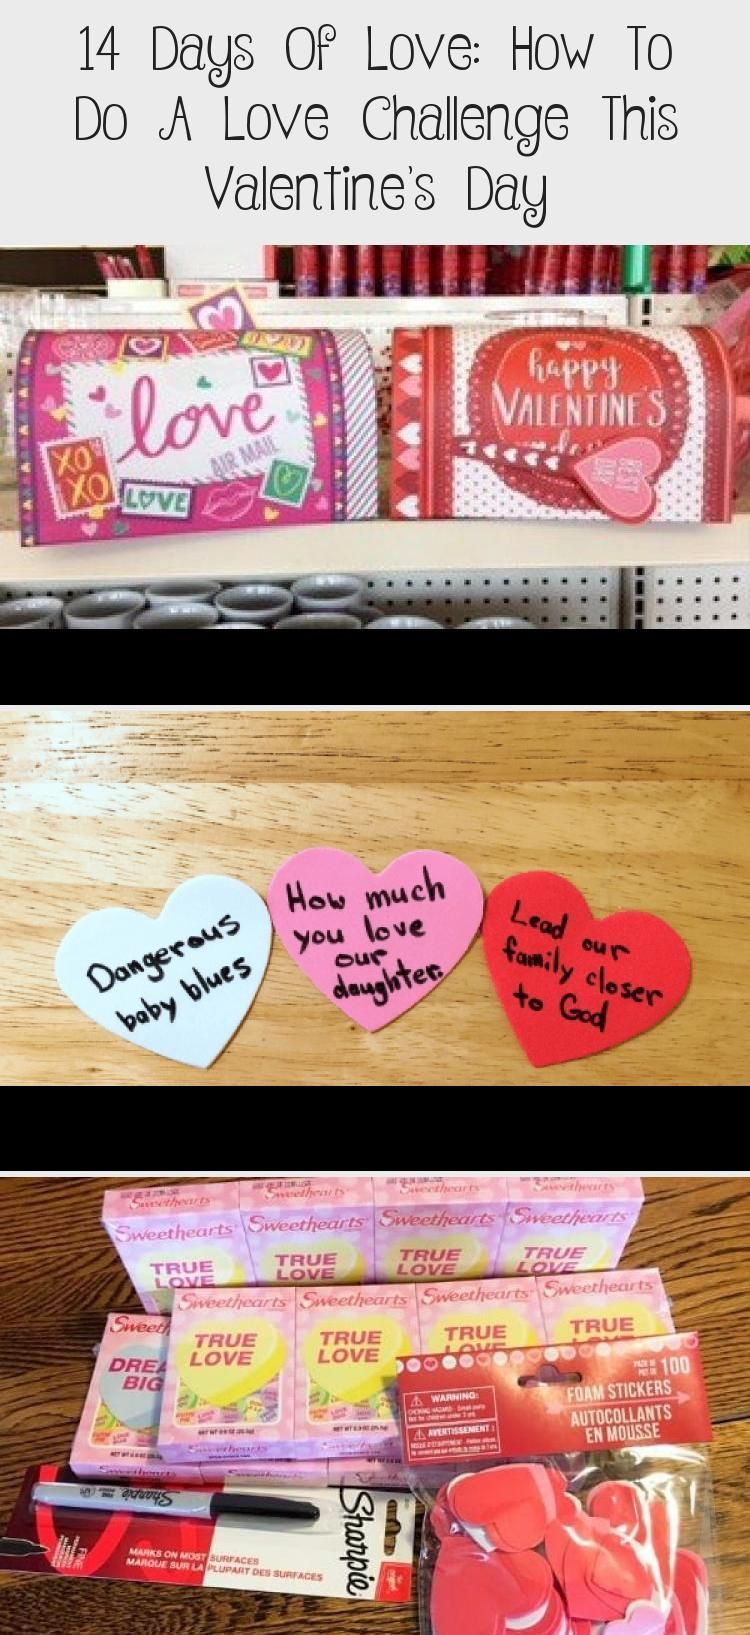 #Challenge #Day #days #love #Valentines Try the 14 day love challenge this Valentine's Day. It's the perfect gift for him whether he's your husband, boyfriend, spouse, etc. This cheap valentines idea is inexpensive but still full of romance and fun! #valentinesday #lovechallenge #giftsforhim